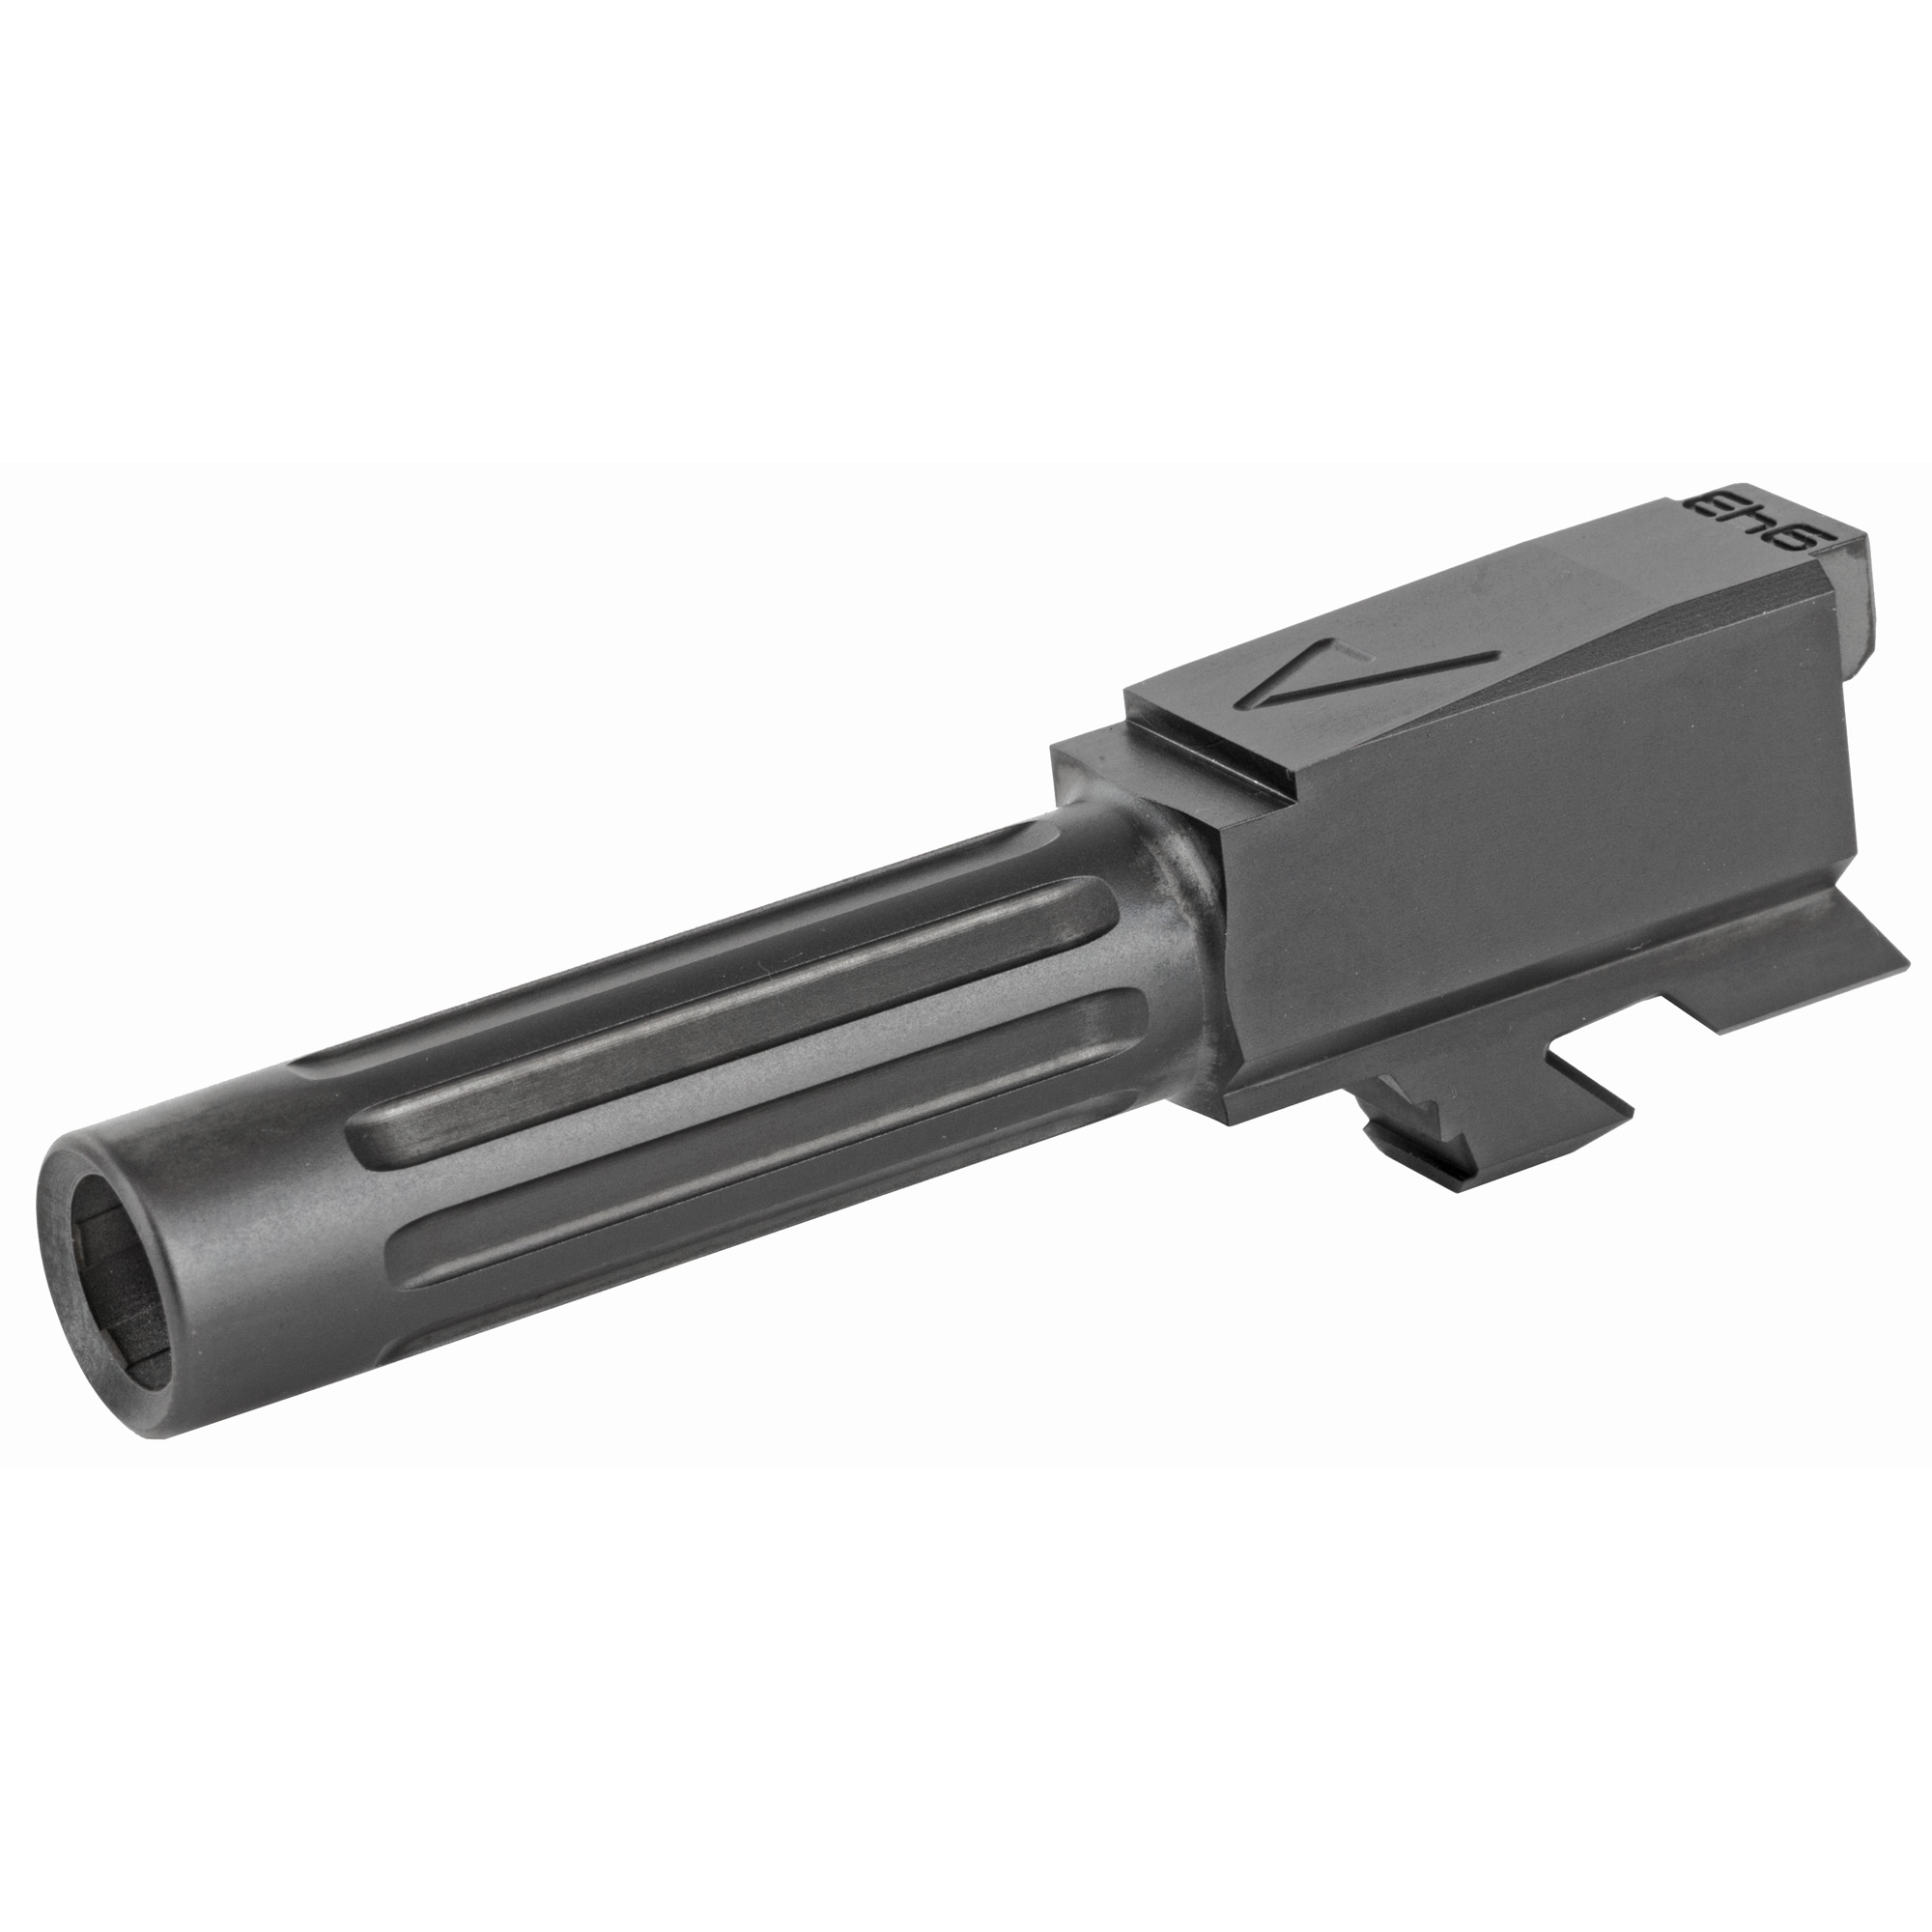 """Agency Arms(R) Mid Line Barrels are for those who desire functionality as well as a unique appearance. While each of their lines maintain the same core accuracy and reliability"""" Agency's Mid Line focuses on additional machining enhancements and appearance while only a having modest price increase over the Standard Line models."""